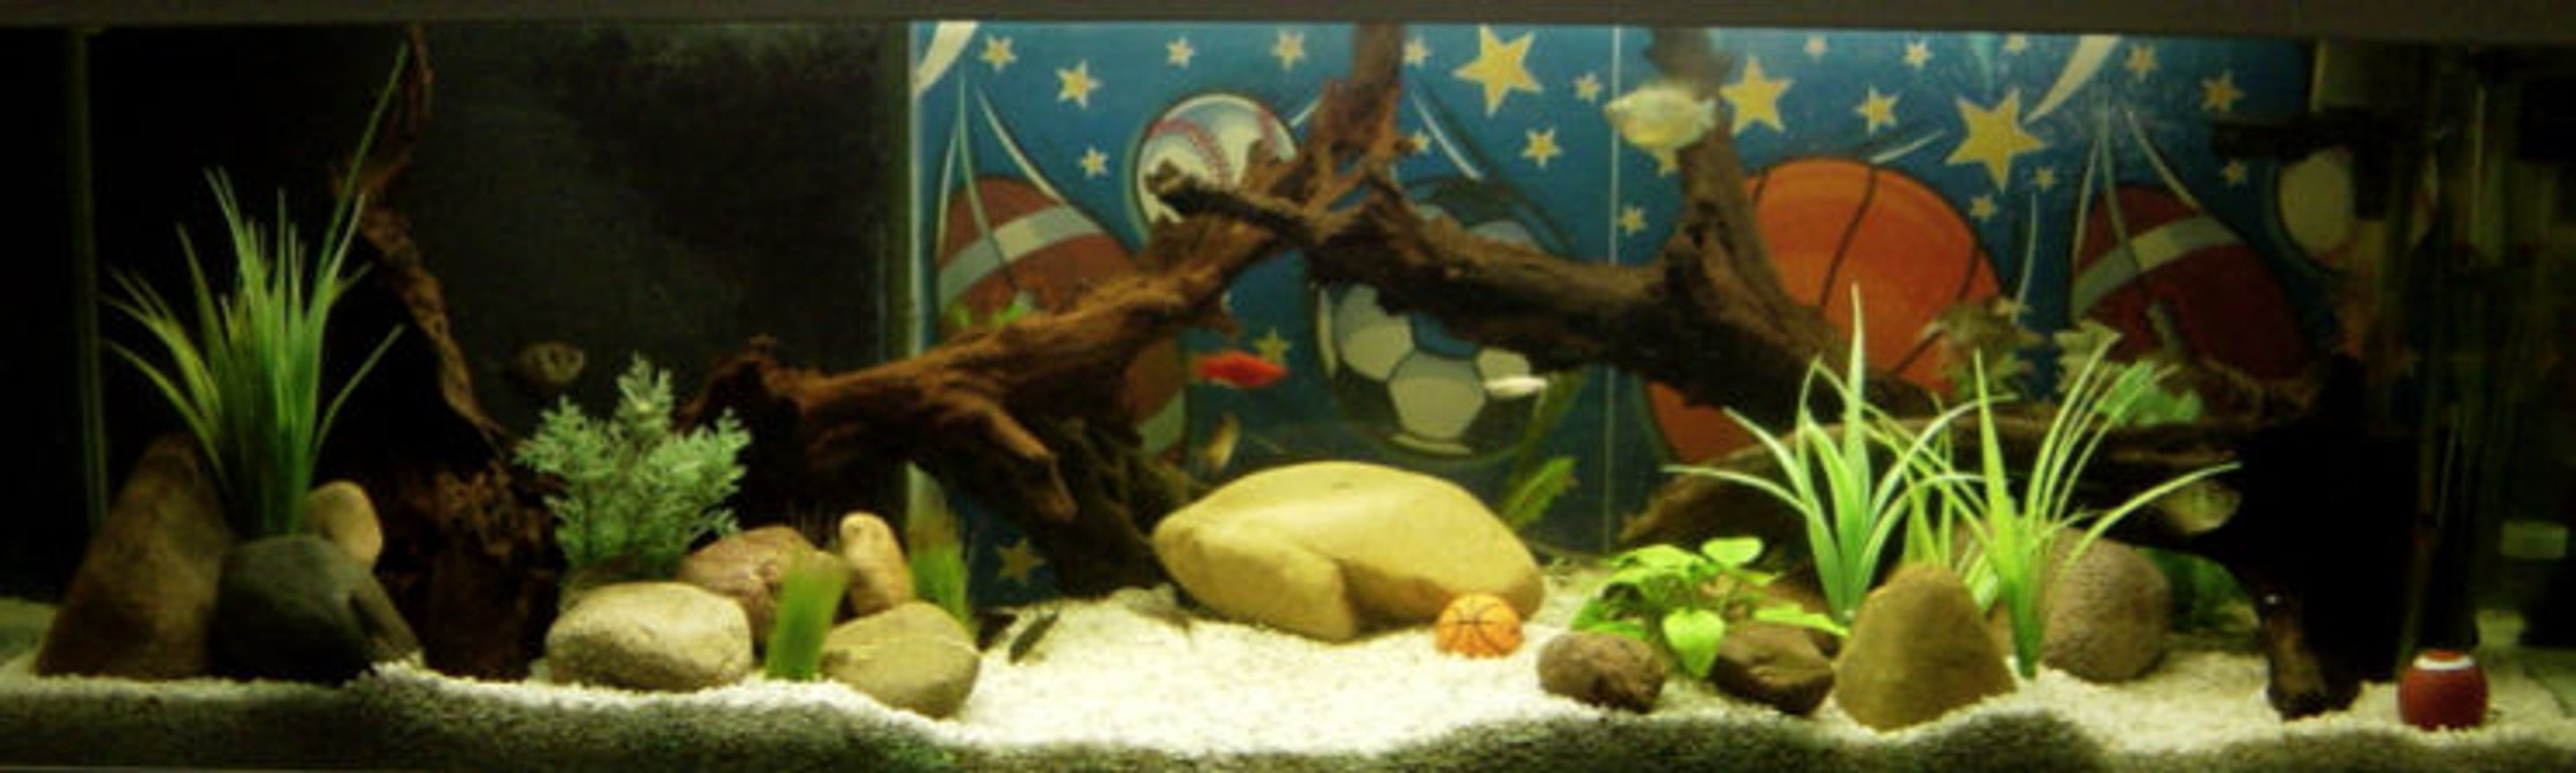 34 gallons freshwater fish tank (mostly fish and non-living decorations) - 34 GAL freshwater sports theme tank. It is placed in an office decorated with all sort of sporting goods.